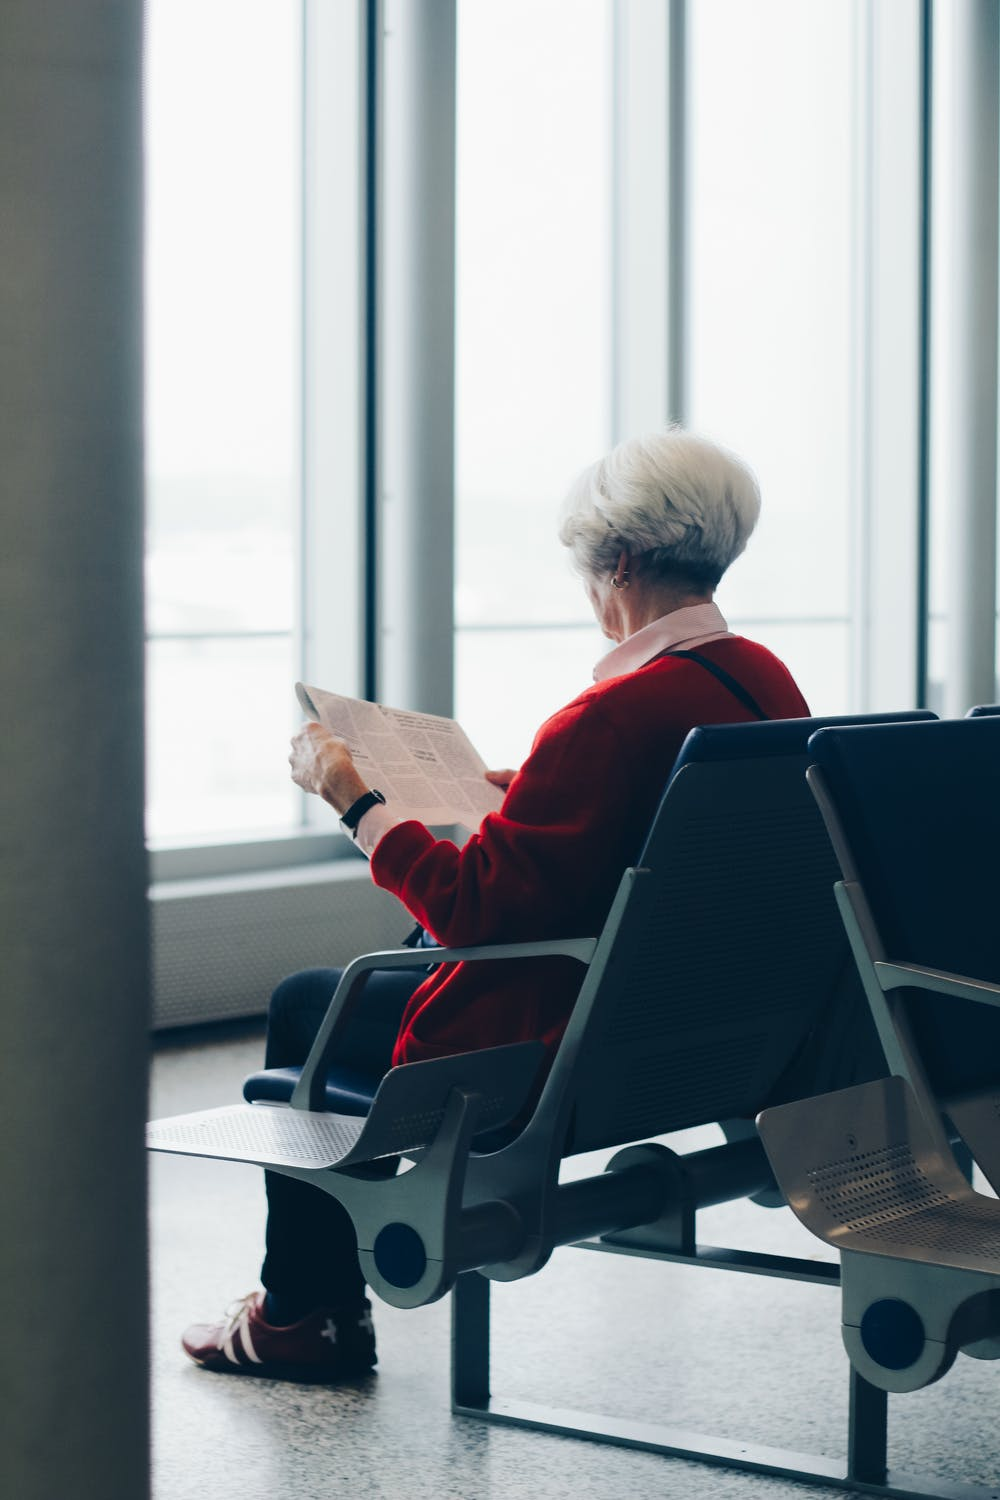 Old woman sitting on a chair while reading the newspaper. | Photo: Pexels